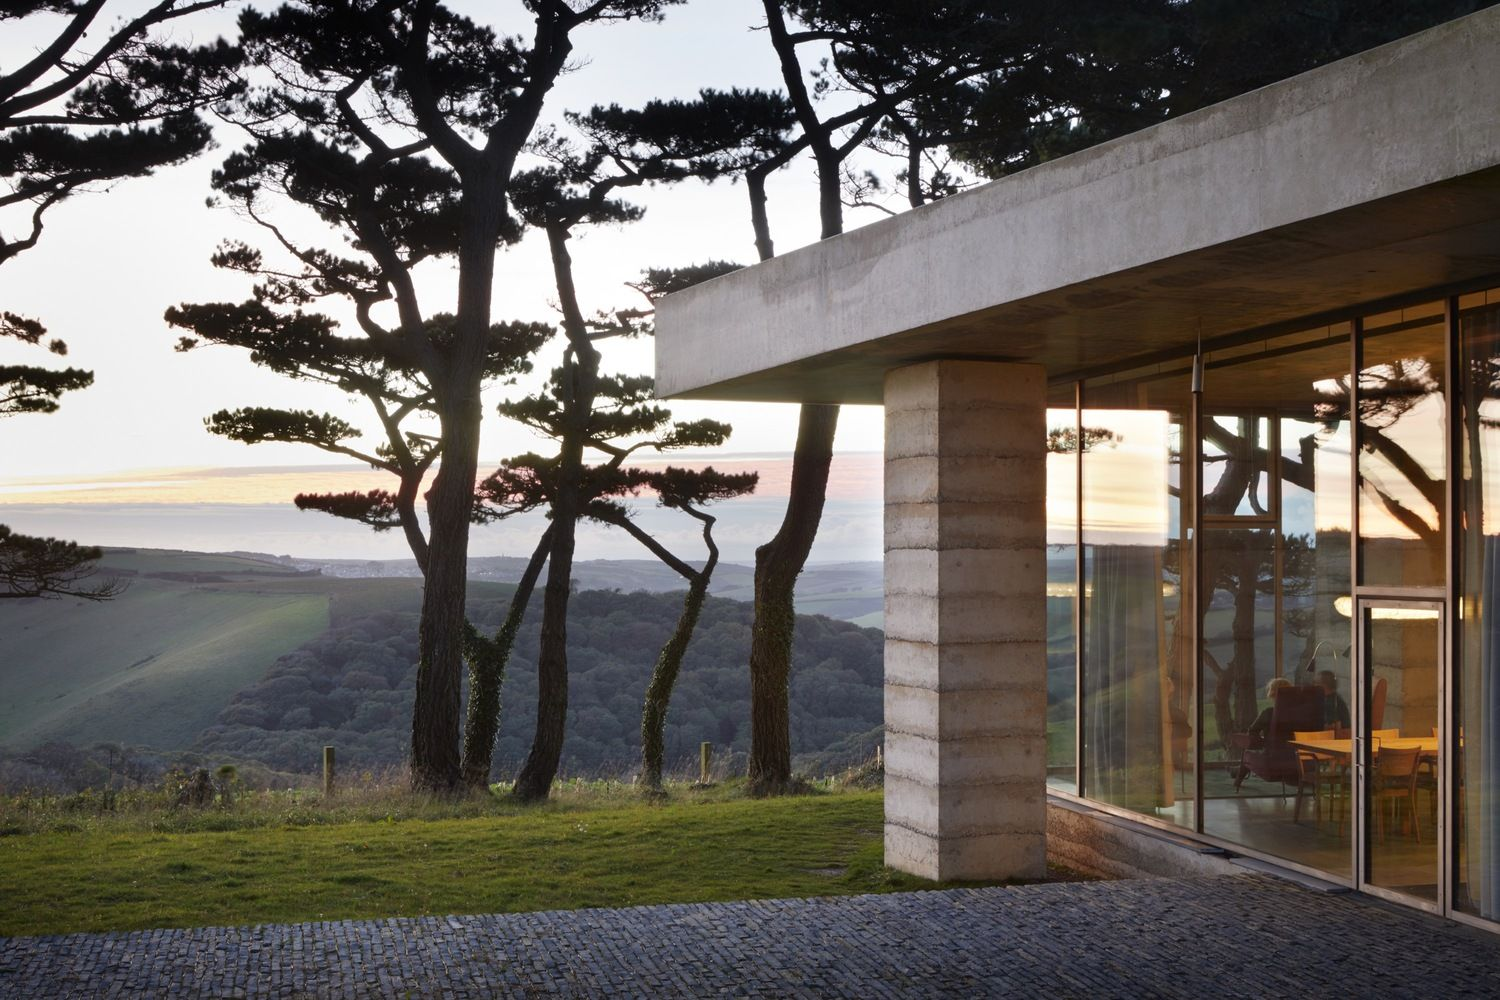 Gallery Of Peter Zumthor S Rammed Concrete Retreat For Living Architecture Nears Completion In England 6 Peter Zumthor Andrea Palladio Architecture Series